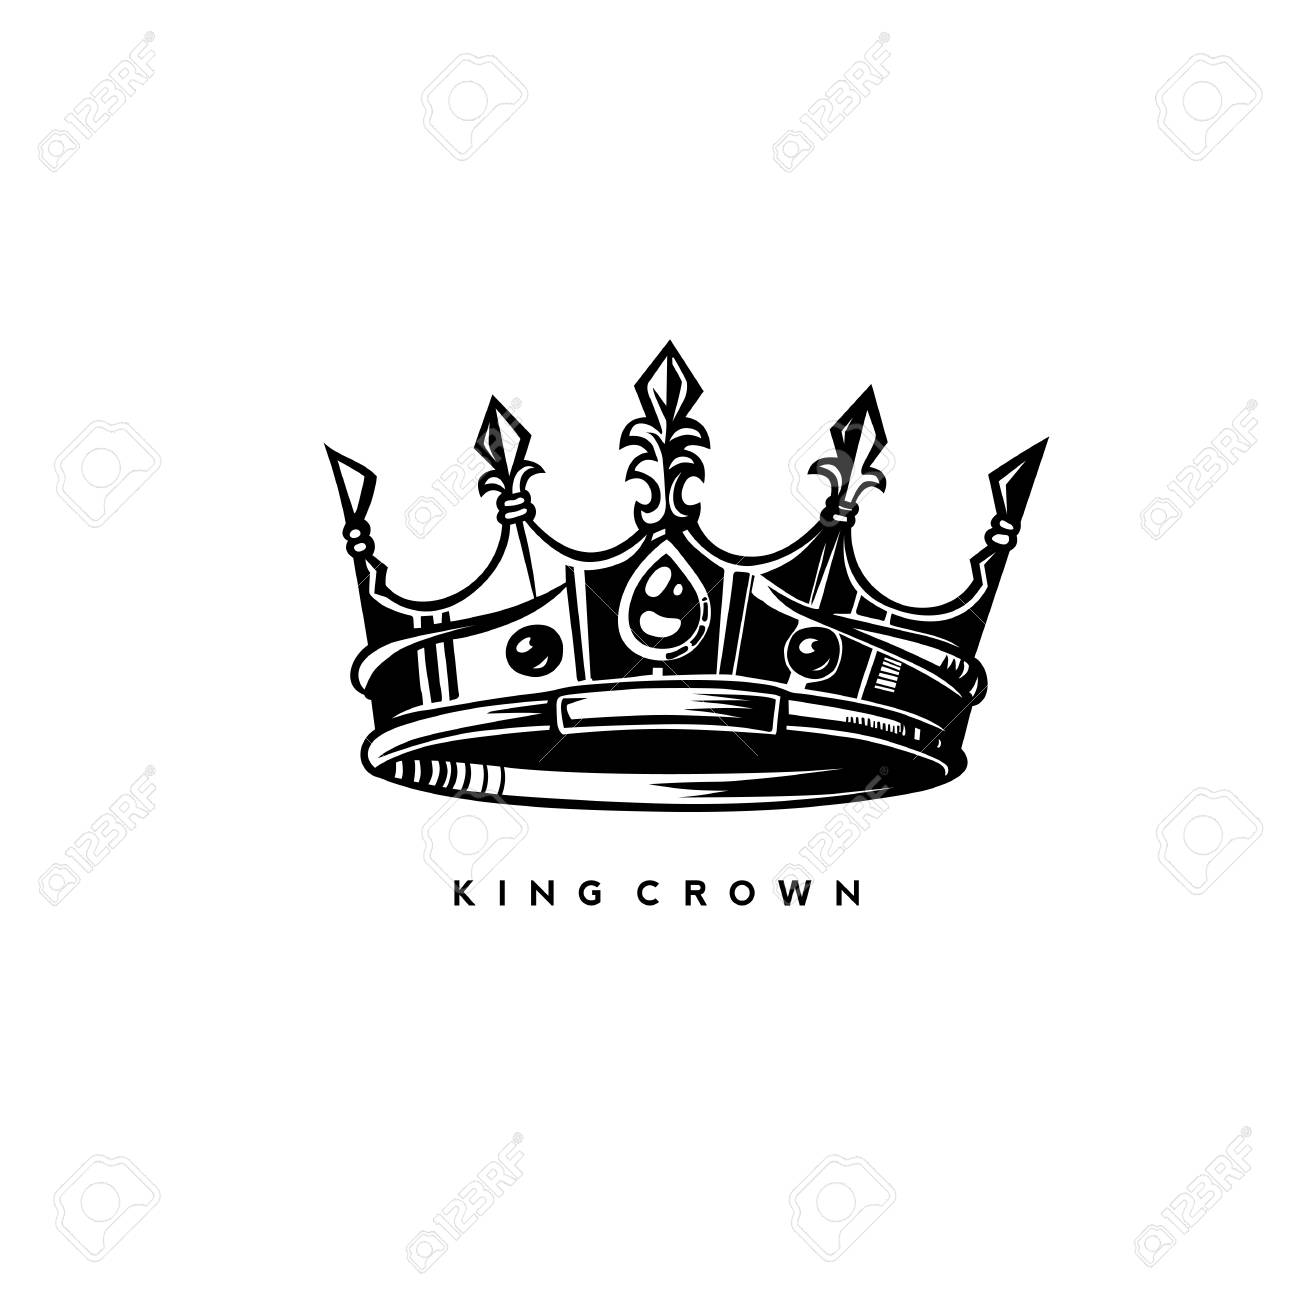 Simple King Crown On White Background With Typography Vector Royalty Free Cliparts Vectors And Stock Illustration Image 94833655 Are you searching for cartoon crown png images or vector? simple king crown on white background with typography vector